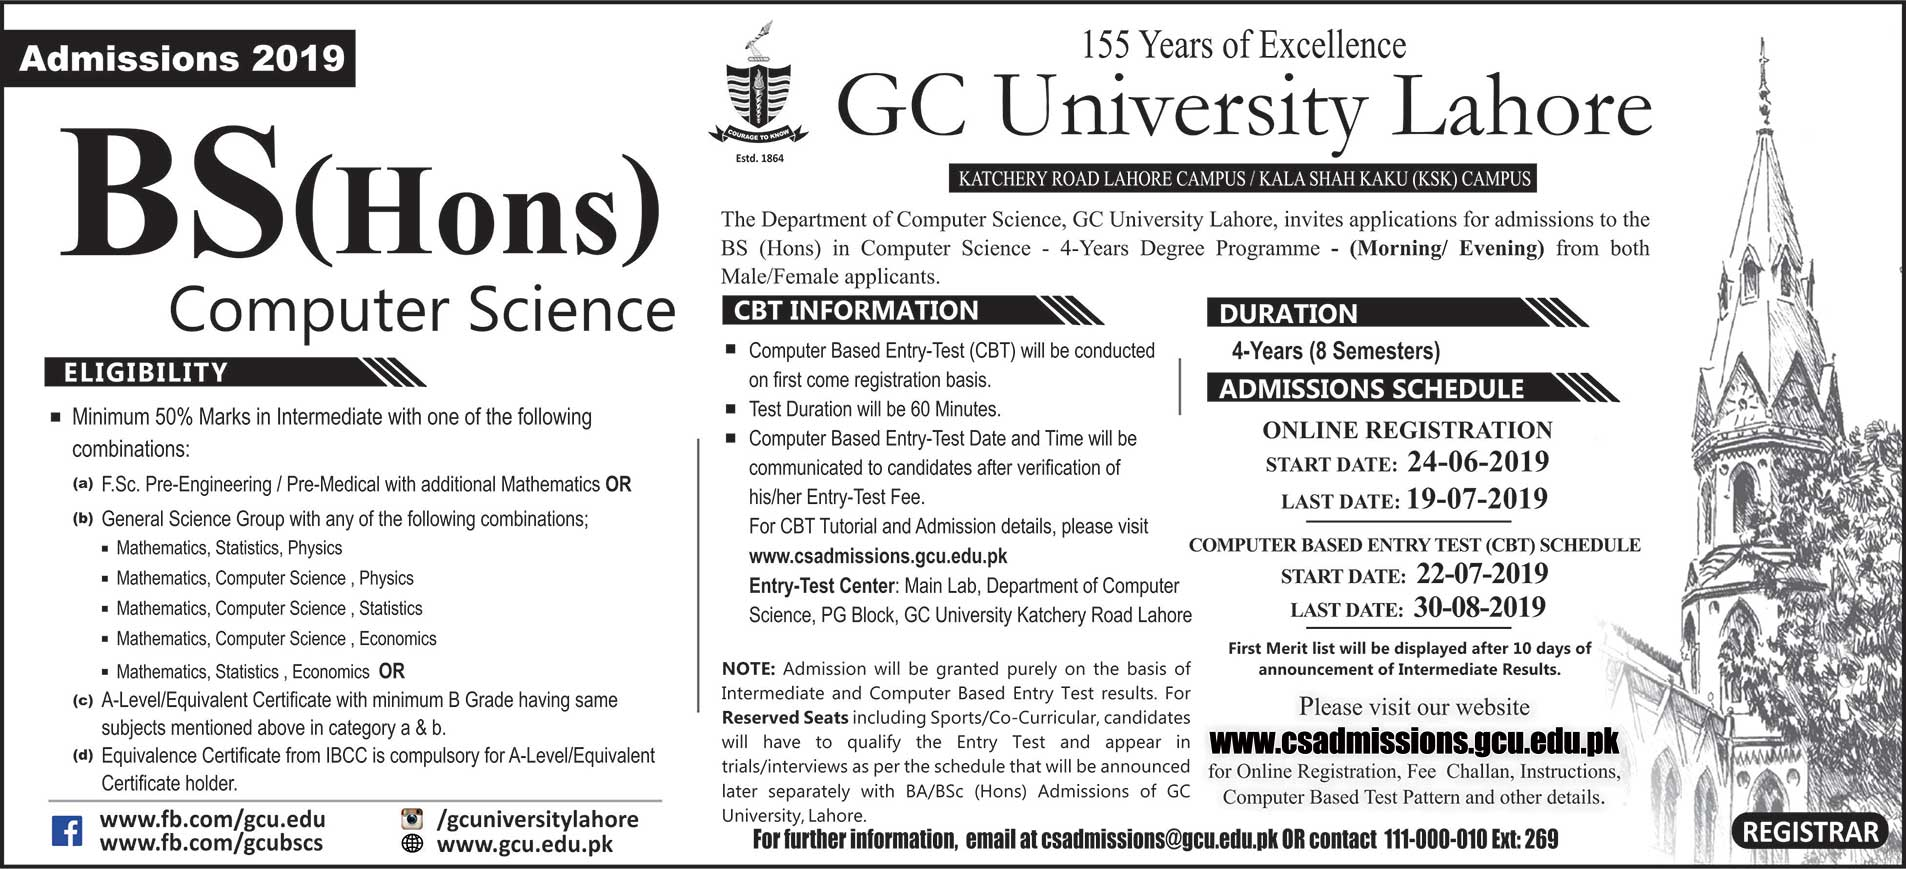 GC BSCS Admission 2019 Advertisement